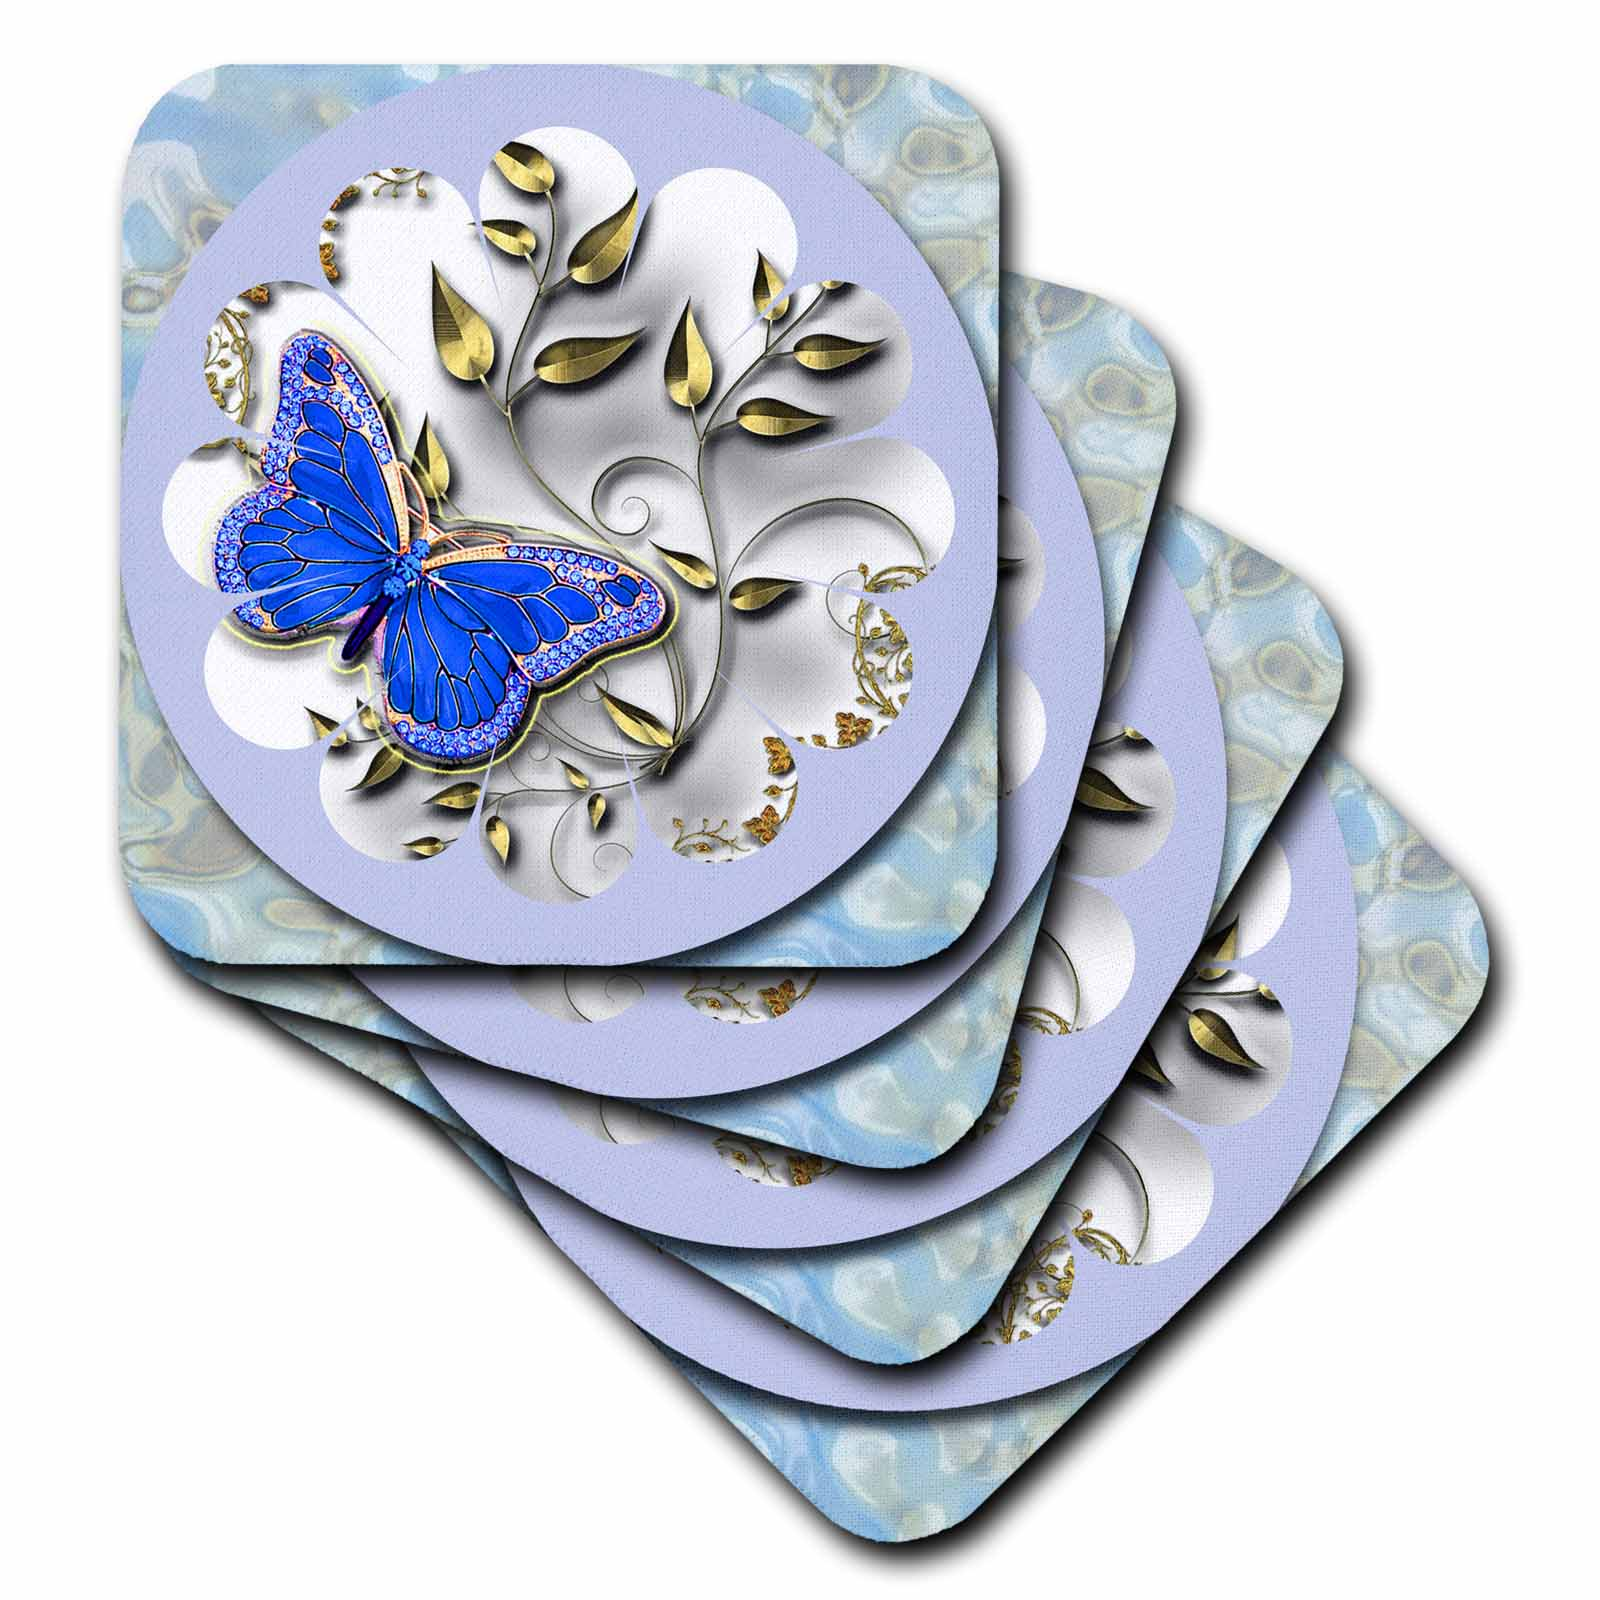 3dRose Pretty round blue frame, butterfly and golden accents , Ceramic Tile Coasters, set of 4